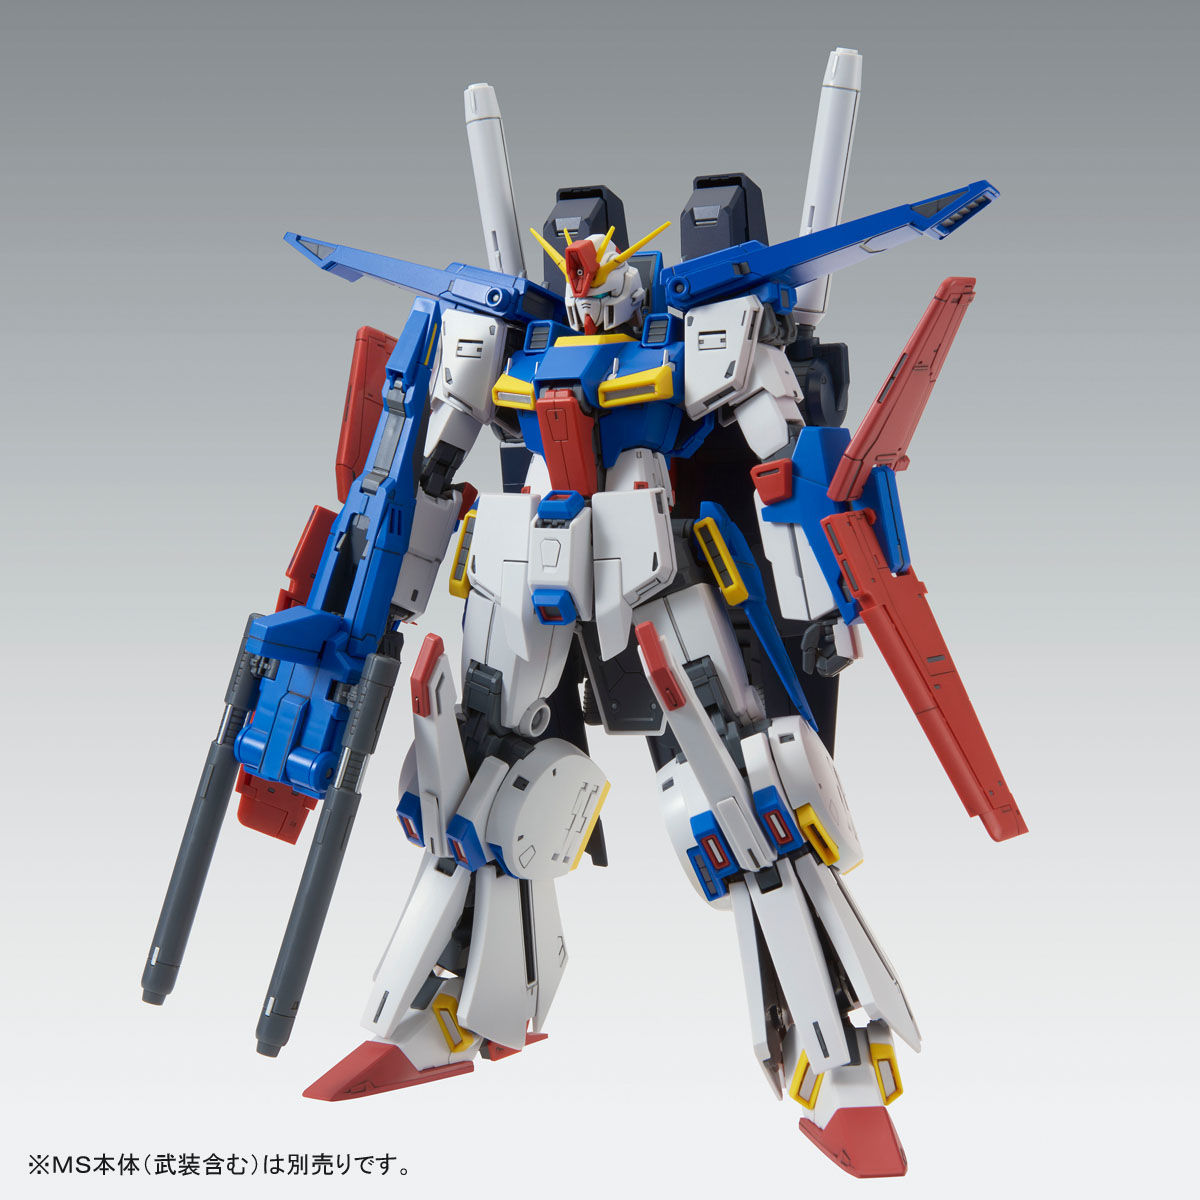 MG 1/100 ダブルゼータガンダム Ver.Ka用 強化型拡張パーツ [Enhanced Expansion Parts For ZZ Gundam]